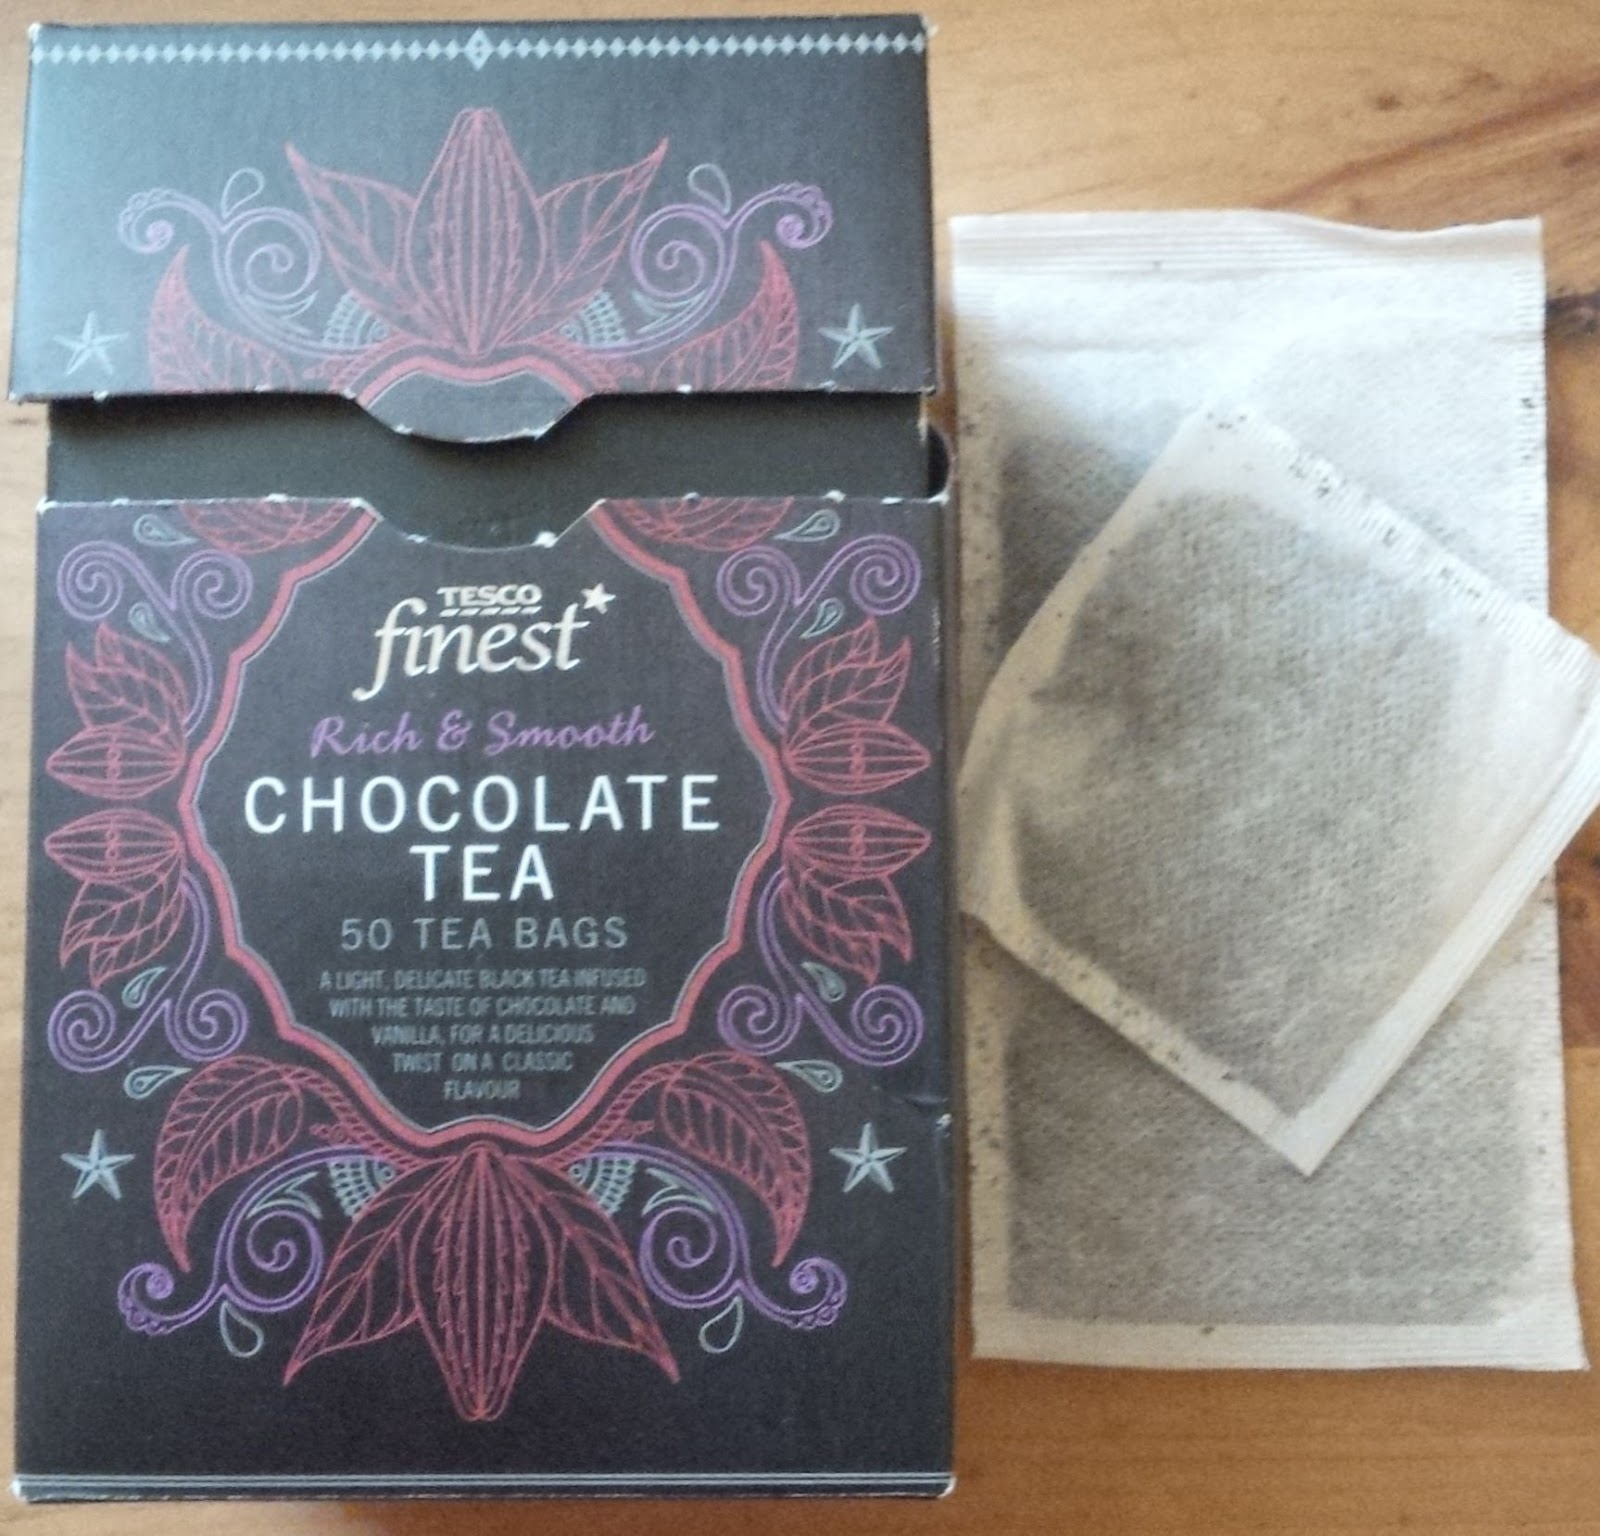 Smell The Tea And Coffee September 2015